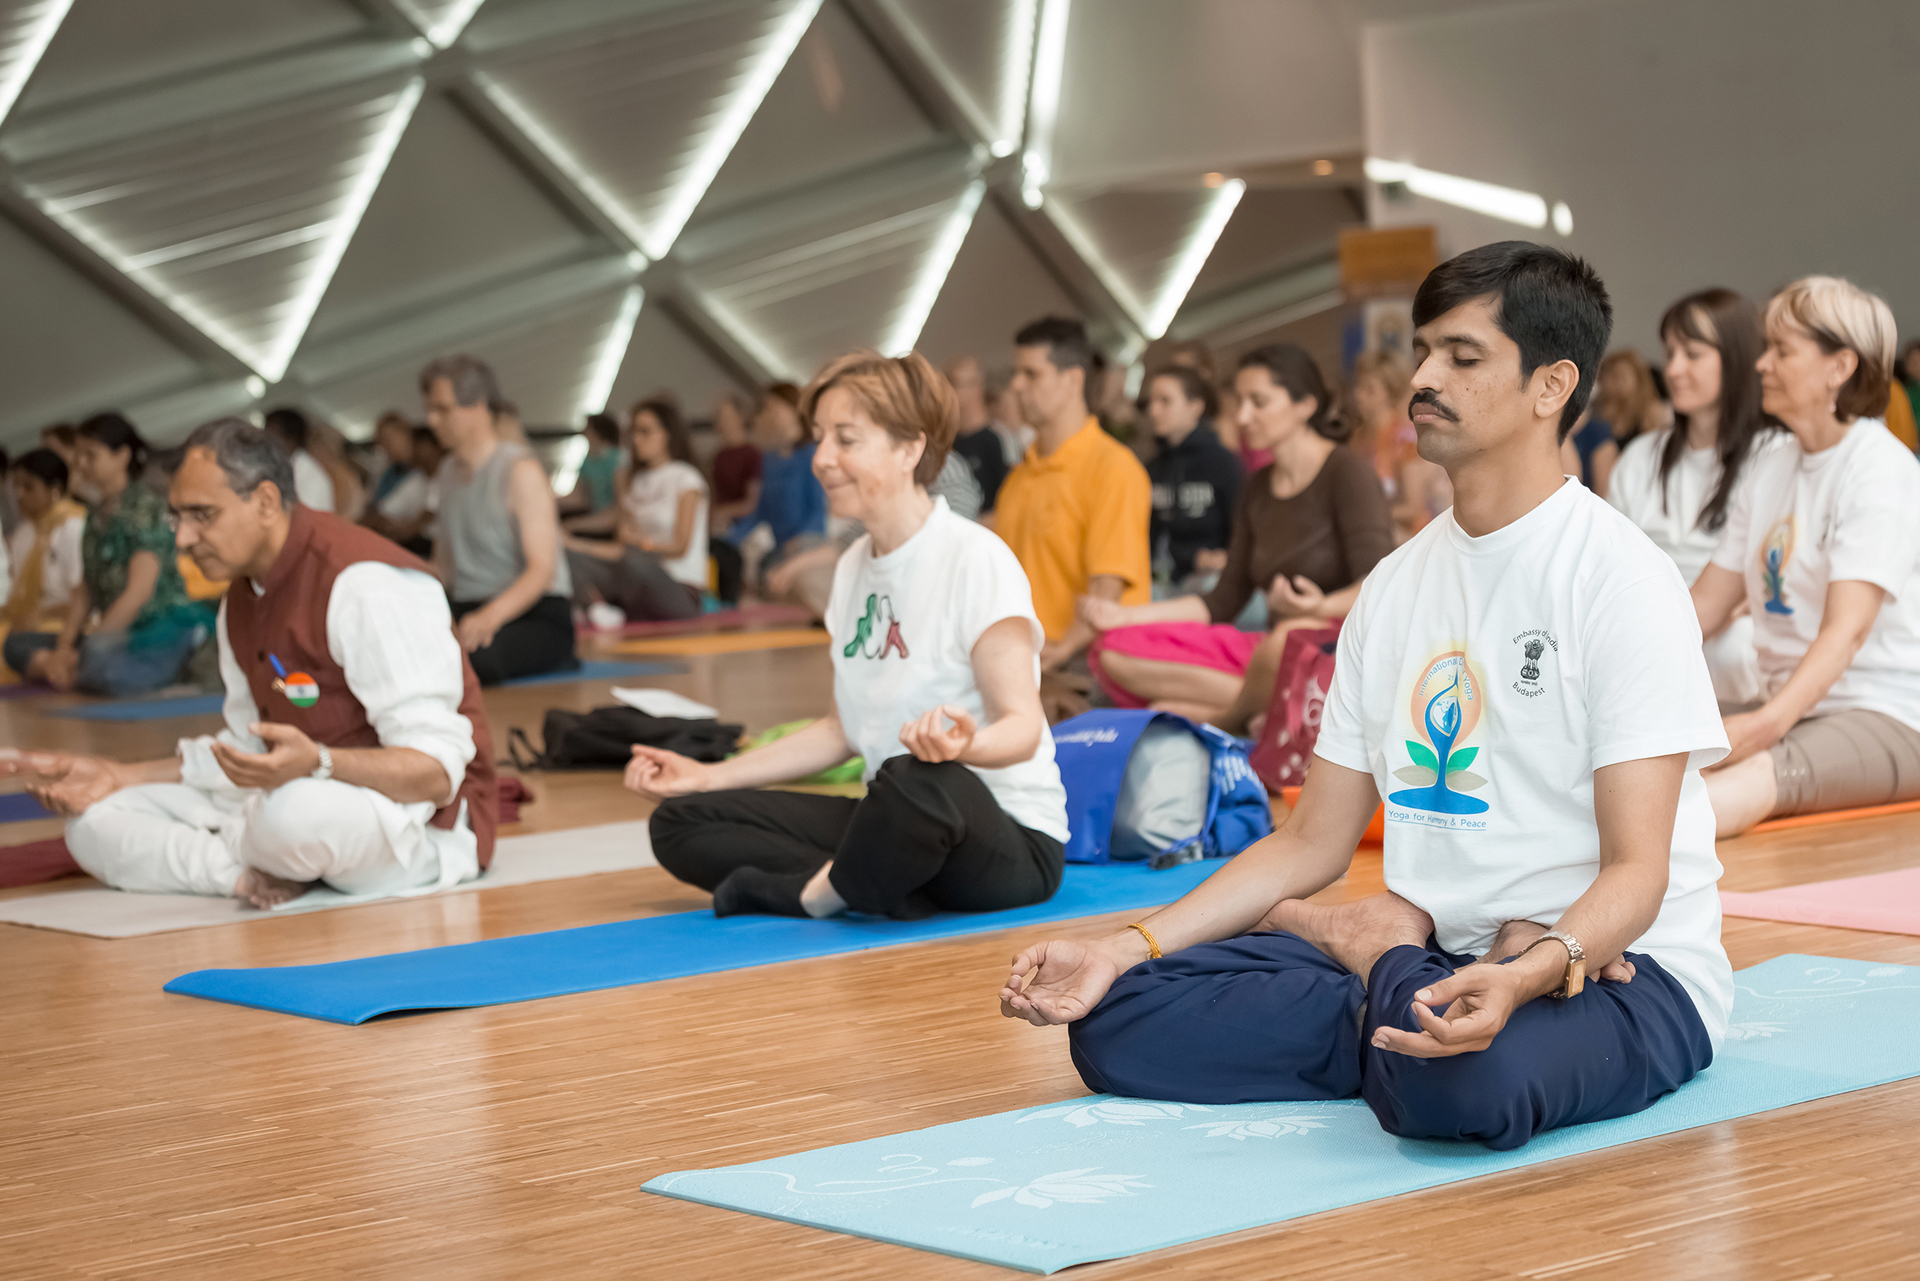 international day of yoga, budapest, hungary, balna